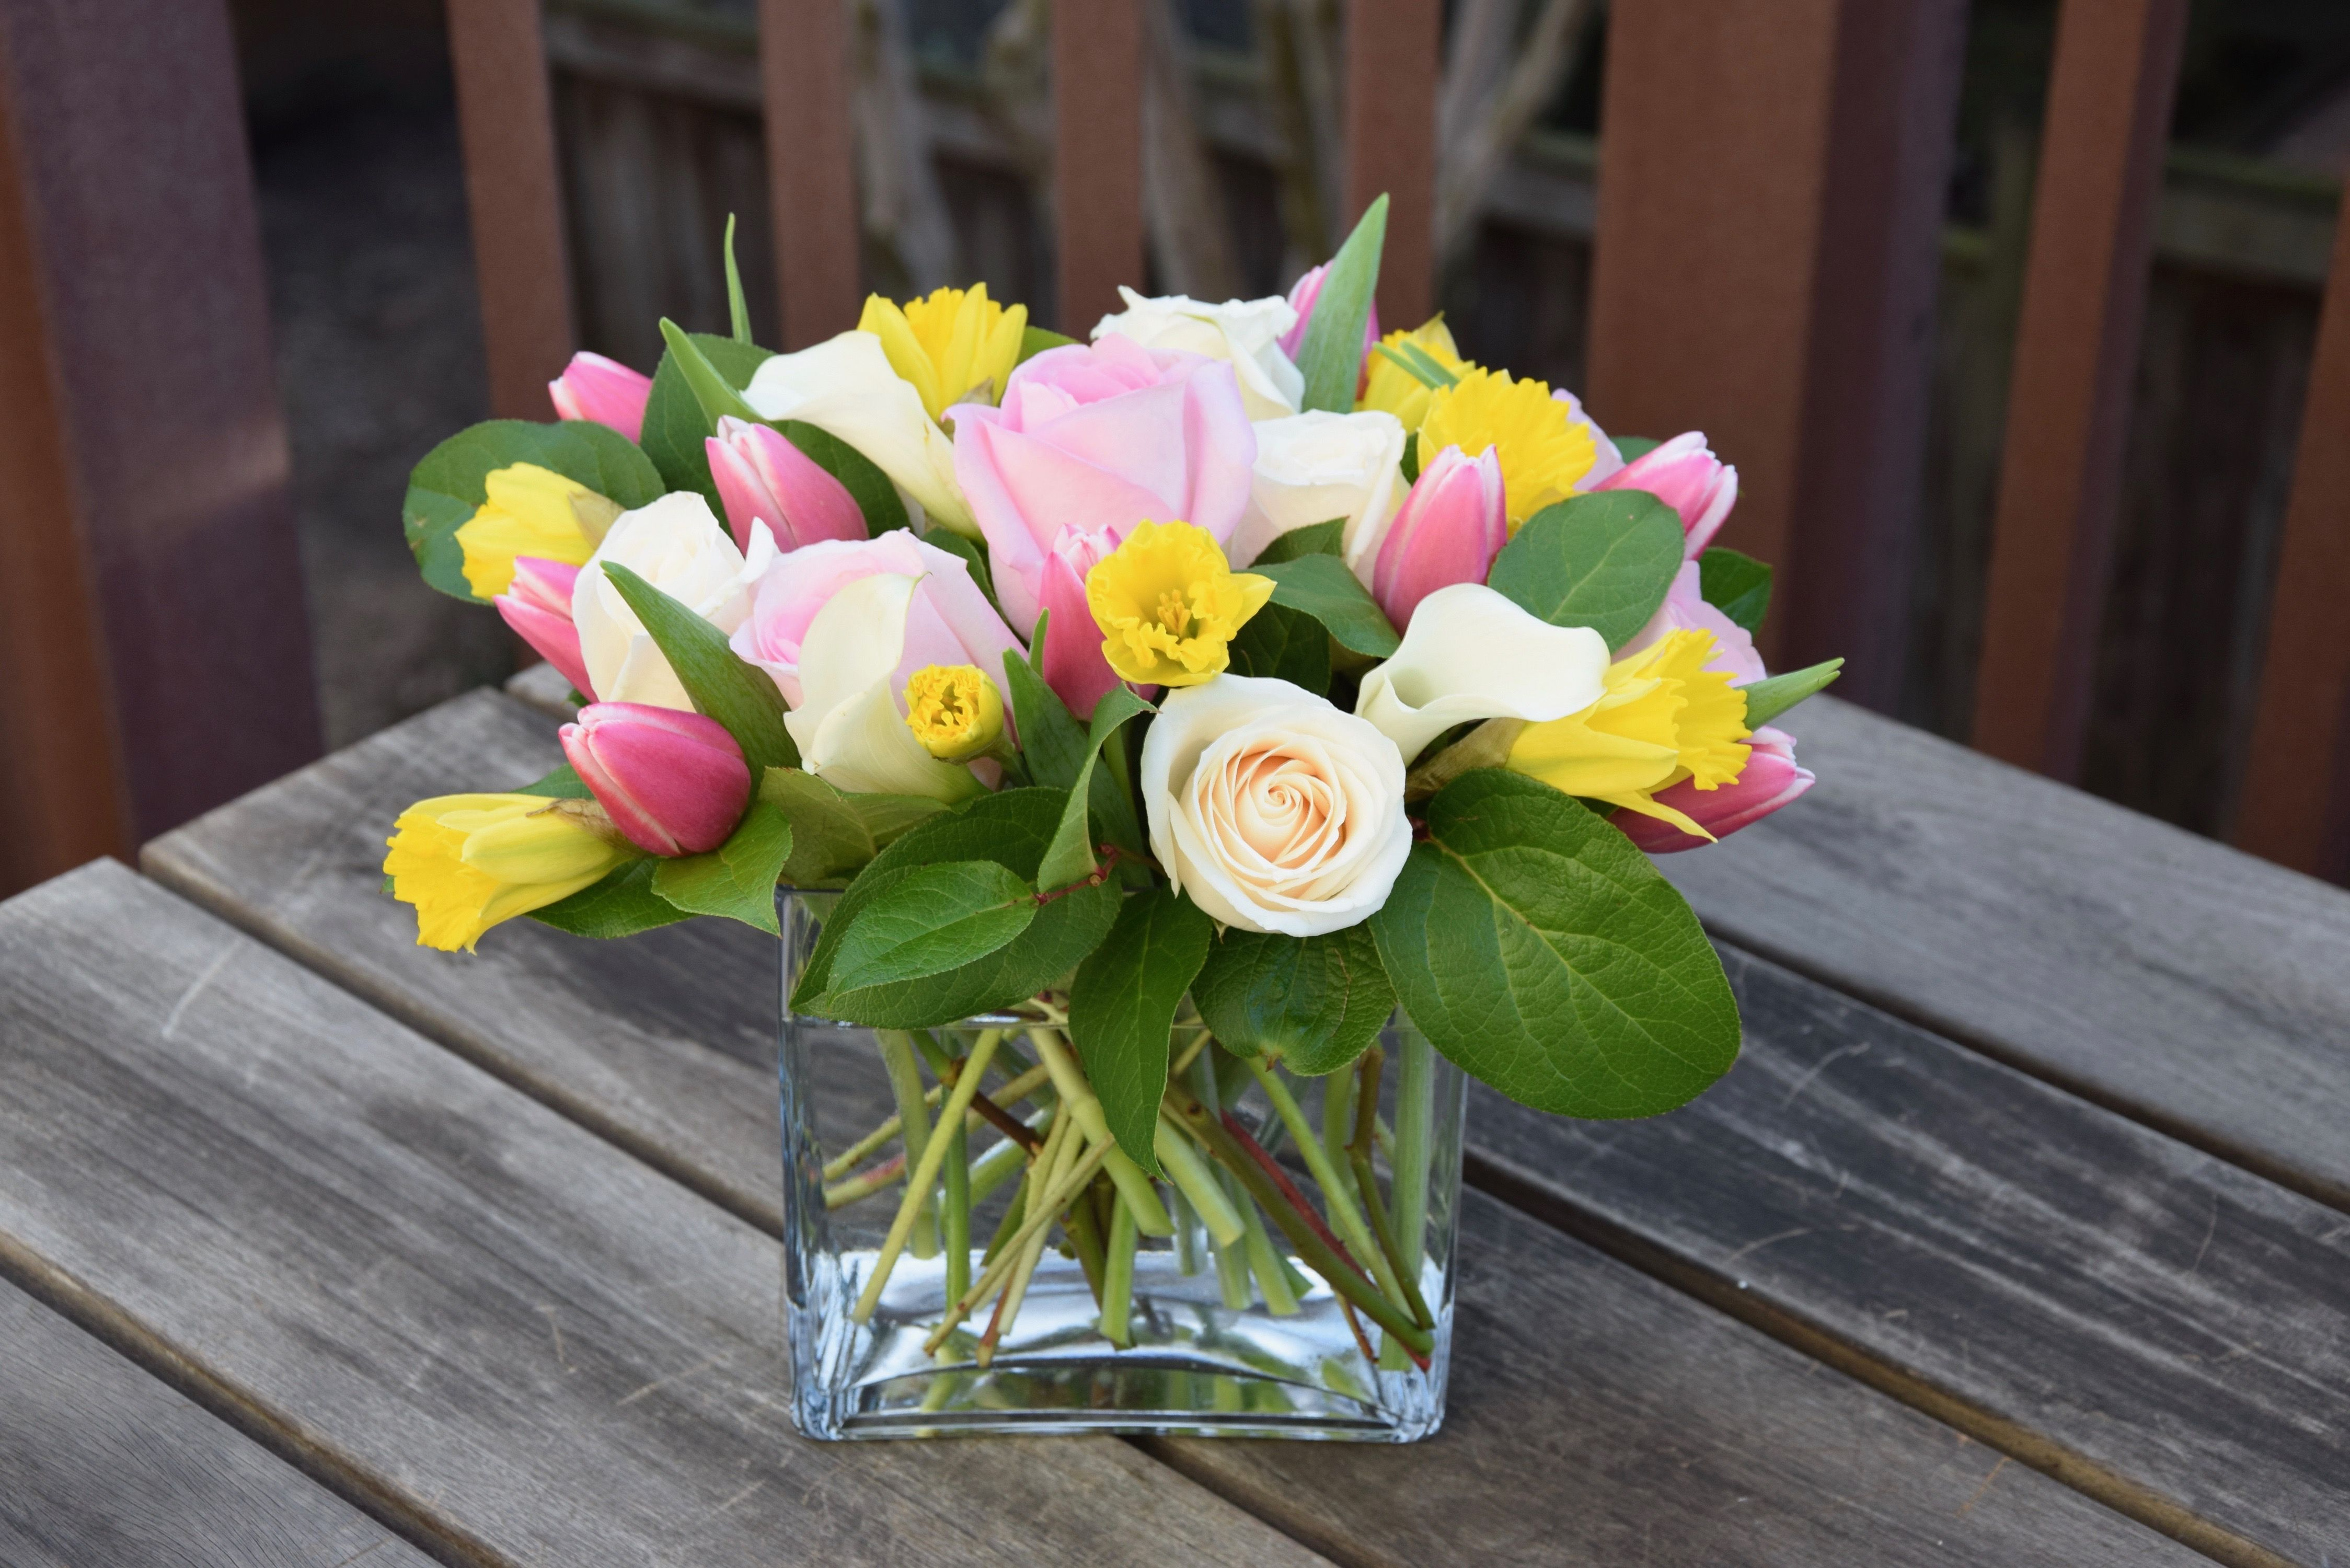 Spring Flower Arrangement With Daffodils Tulips Roses Spring